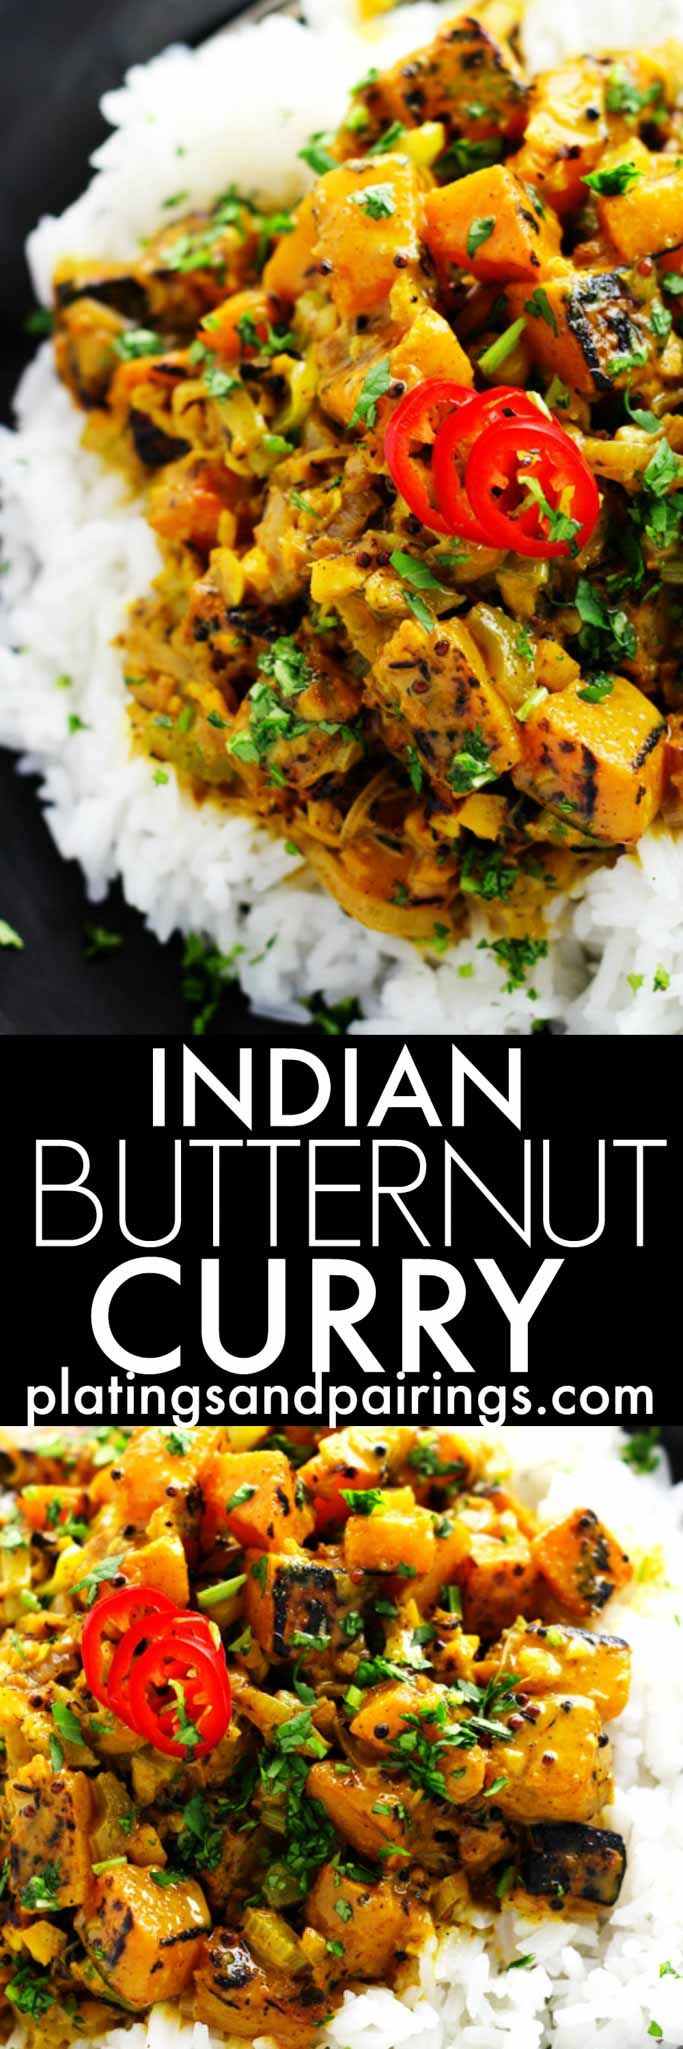 This Indian Butternut Squash Curry is a delicious vegetarian curry dish simmered with fragrant spices and rich coconut milk.   platingsandpairings.com